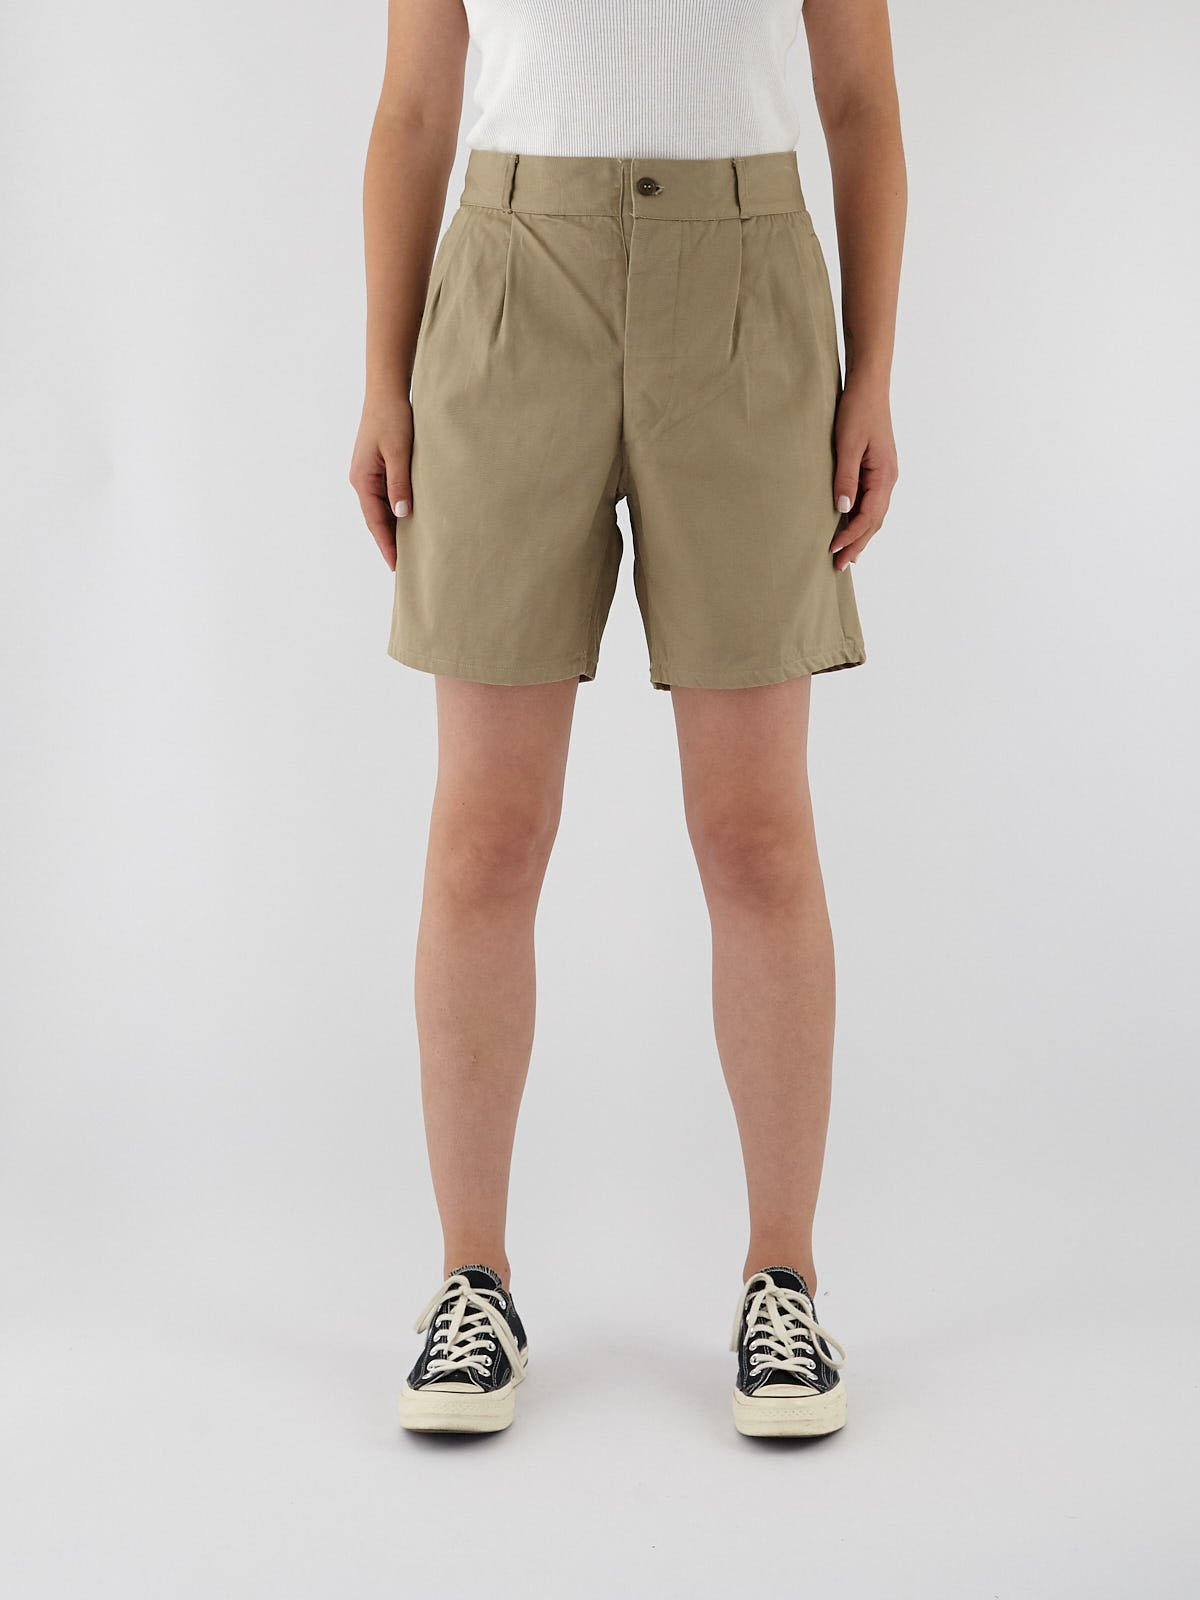 The Level Military Shorts